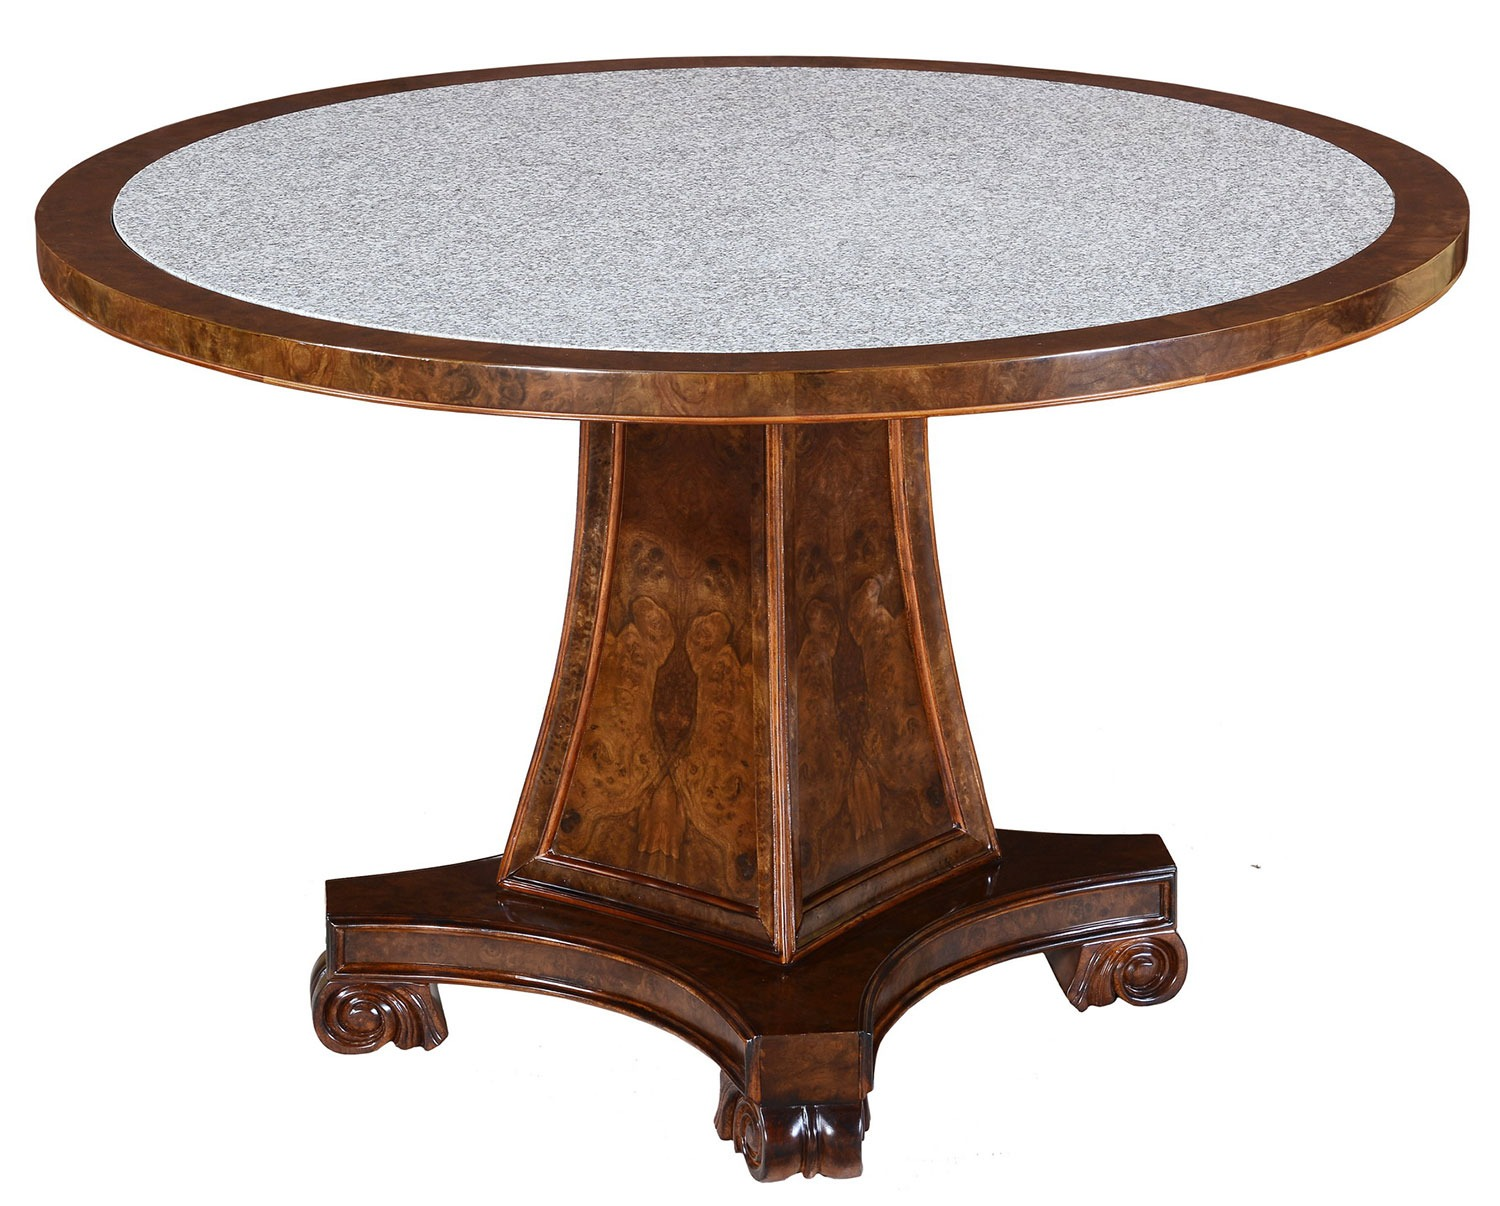 Robert Adam style round dining table